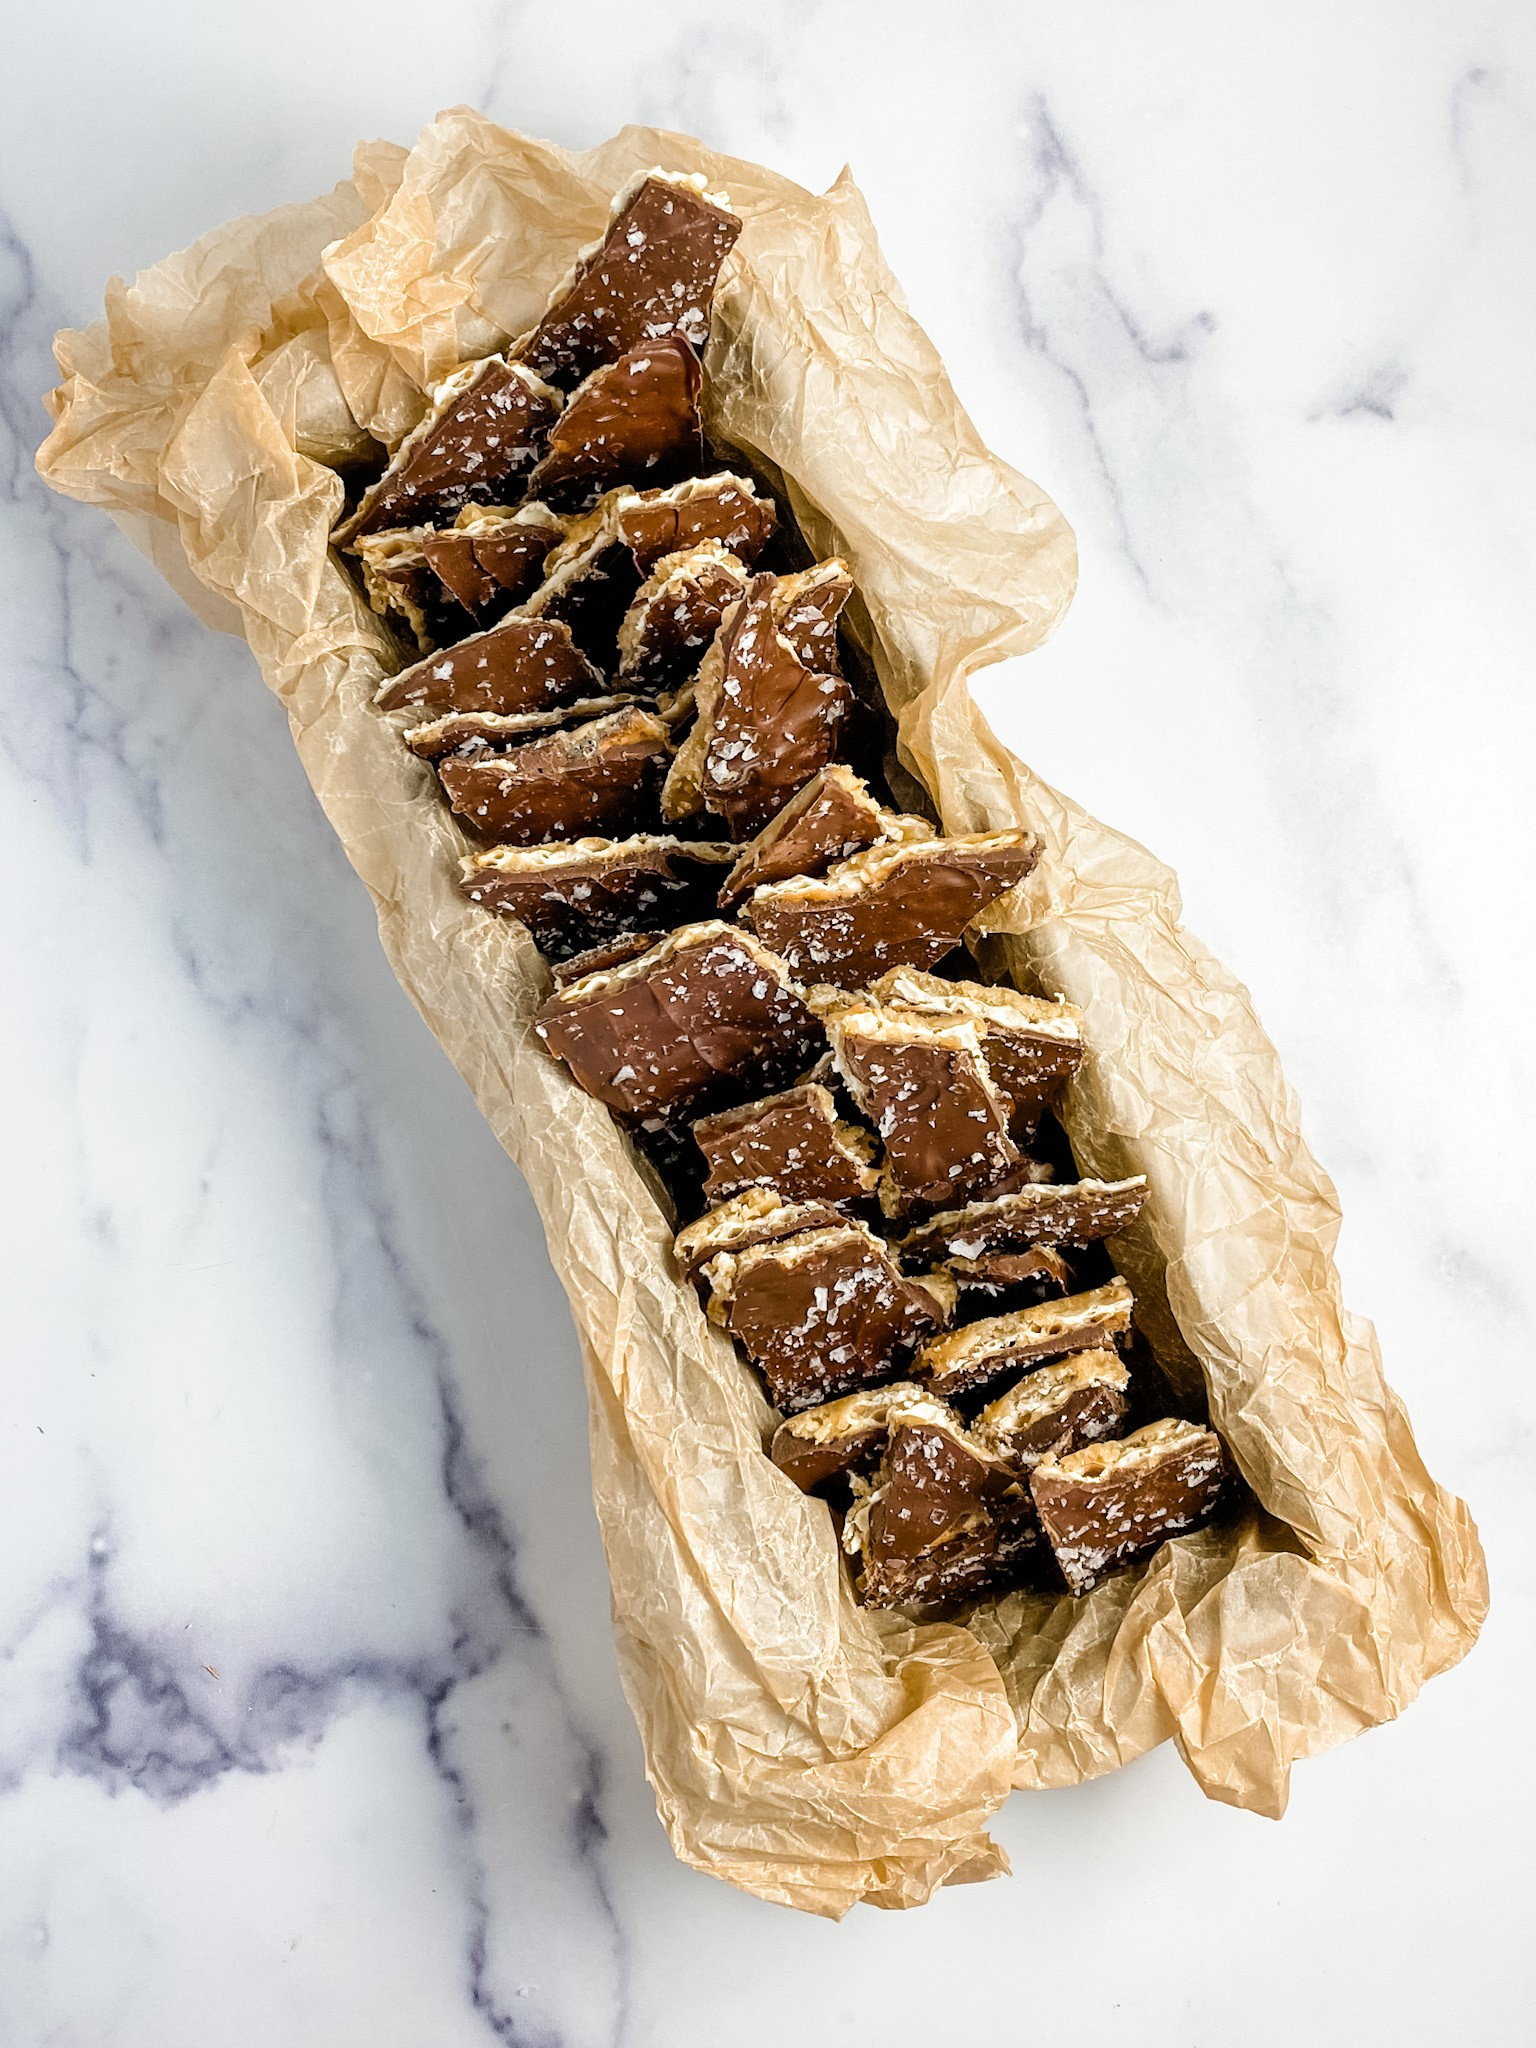 Pregistry's Friday Recipe: Chocolate Toffee Crackers